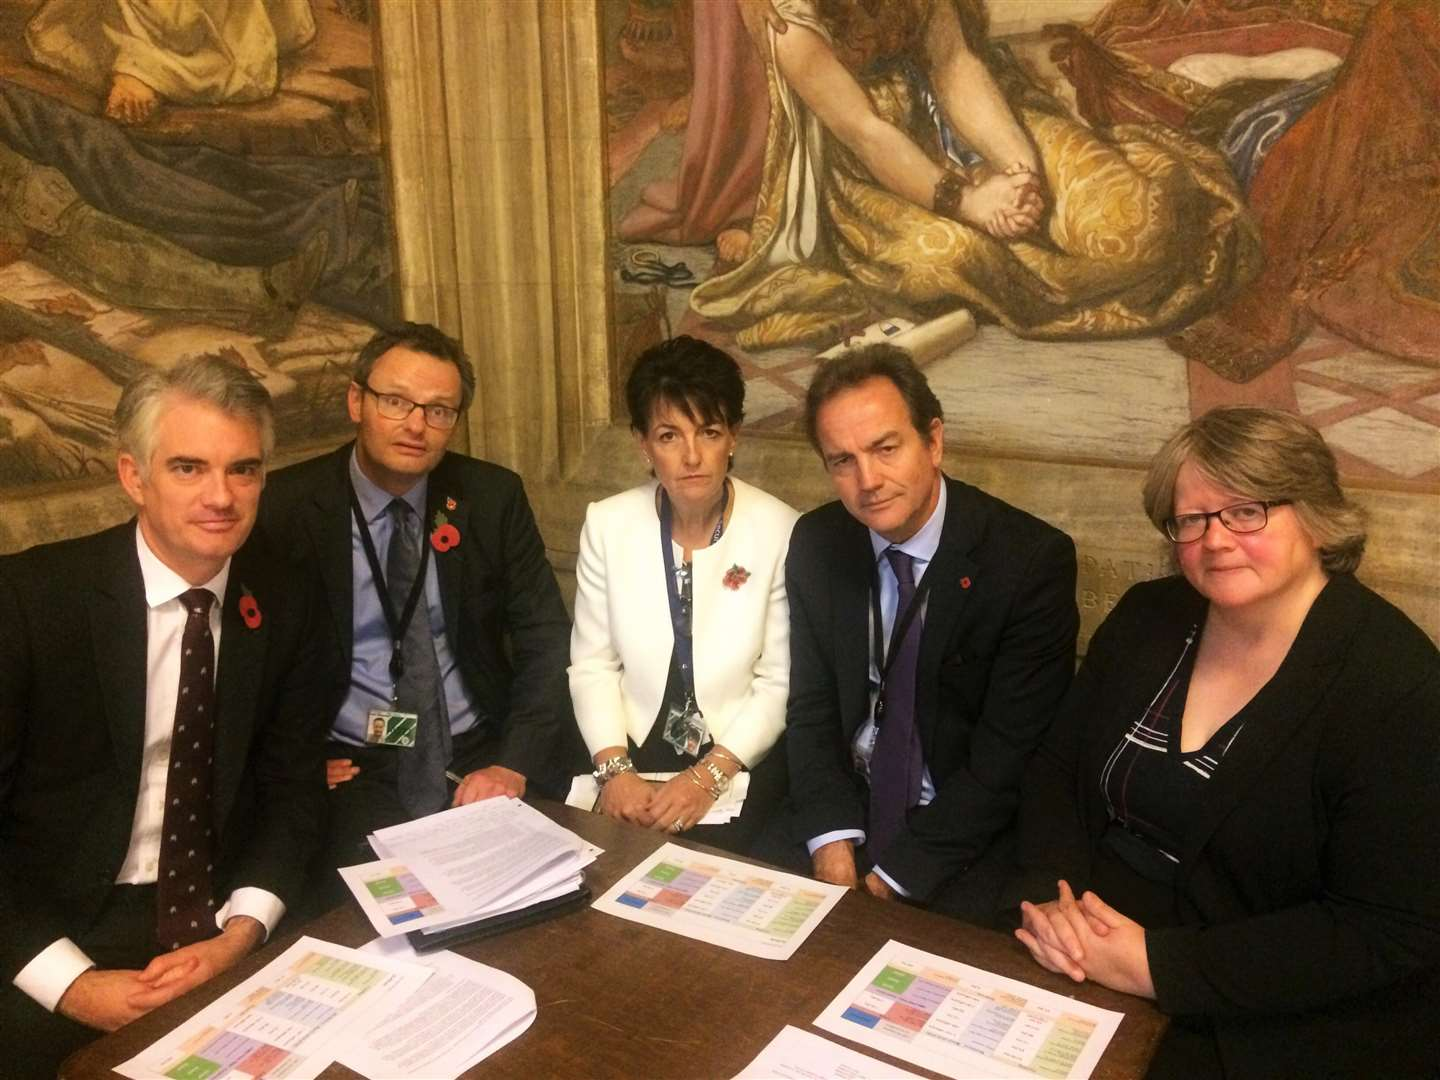 Suffolk Members of Parliament meet the Government's Police Minister Nick Hurd to discuss fairer funding for Suffolk Police. Pictured from left: James Cartlidge, Peter Aldous, Jo Churchill, Nick Hurd, and Dr Therese Coffey. (5440528)